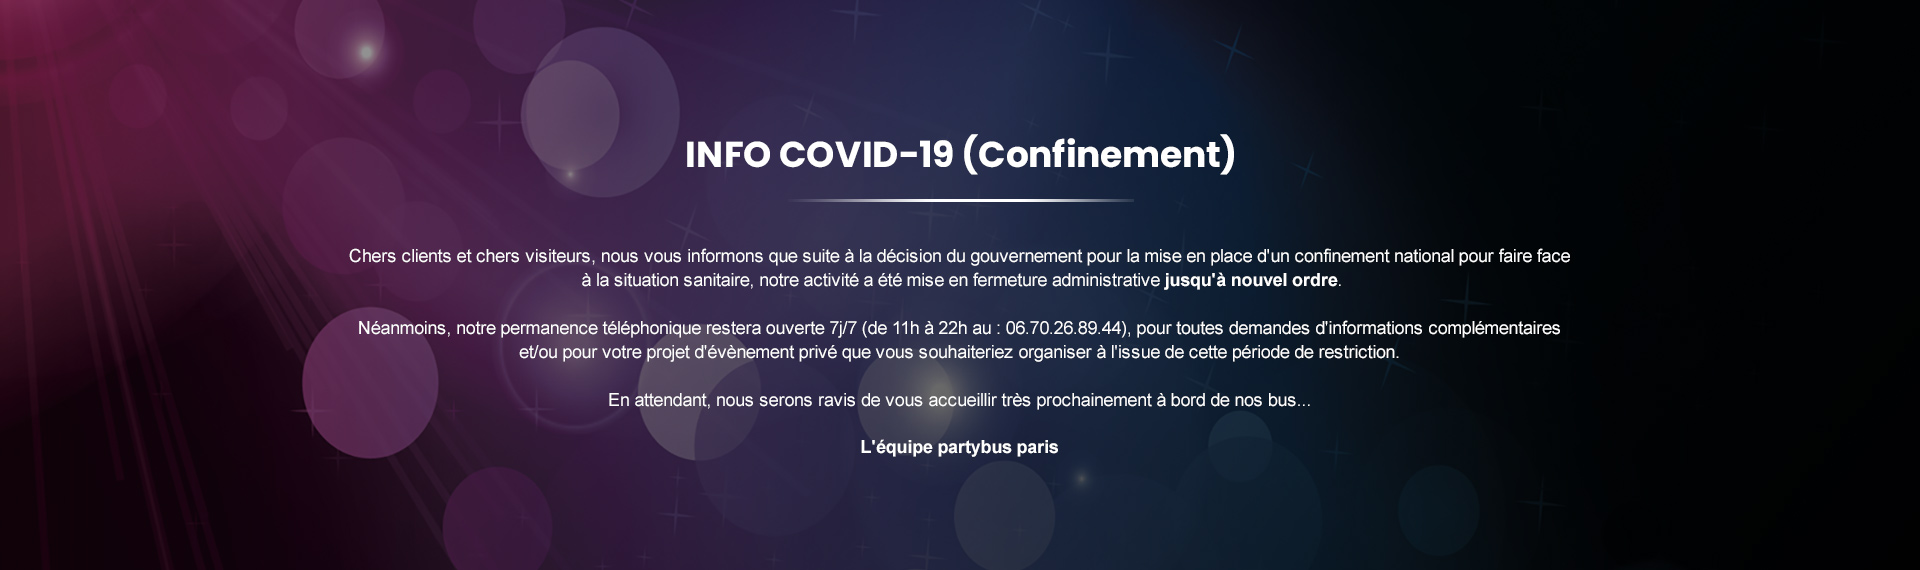 partybus-covid-2